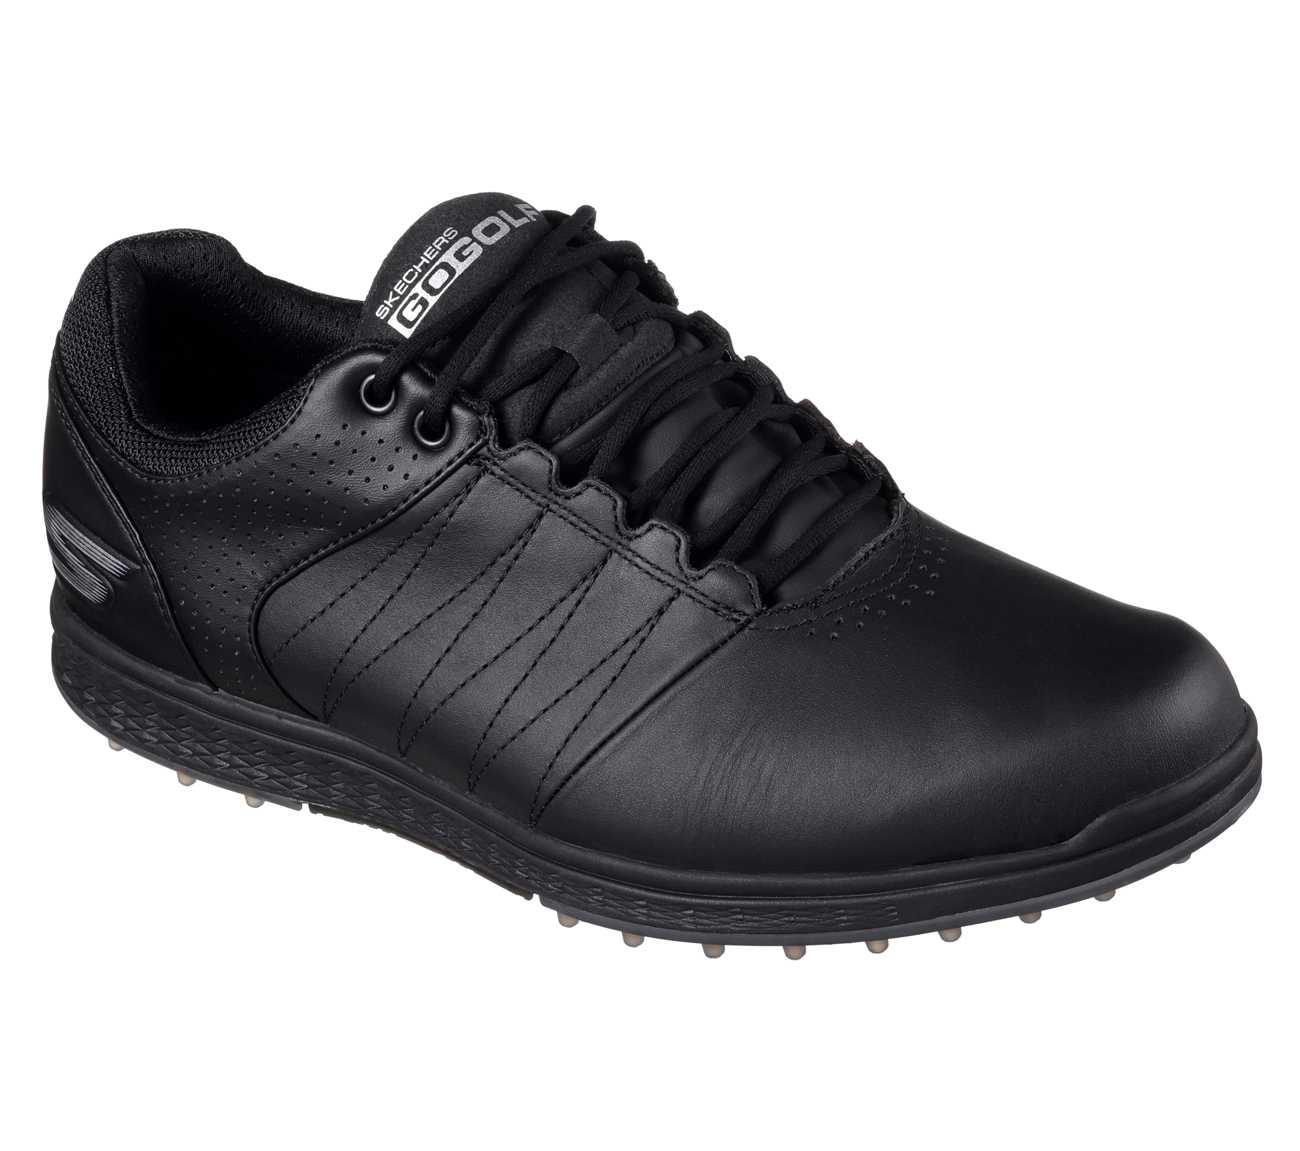 Sketchers Men's Go Golf Elite 2 Golf Shoe - Black